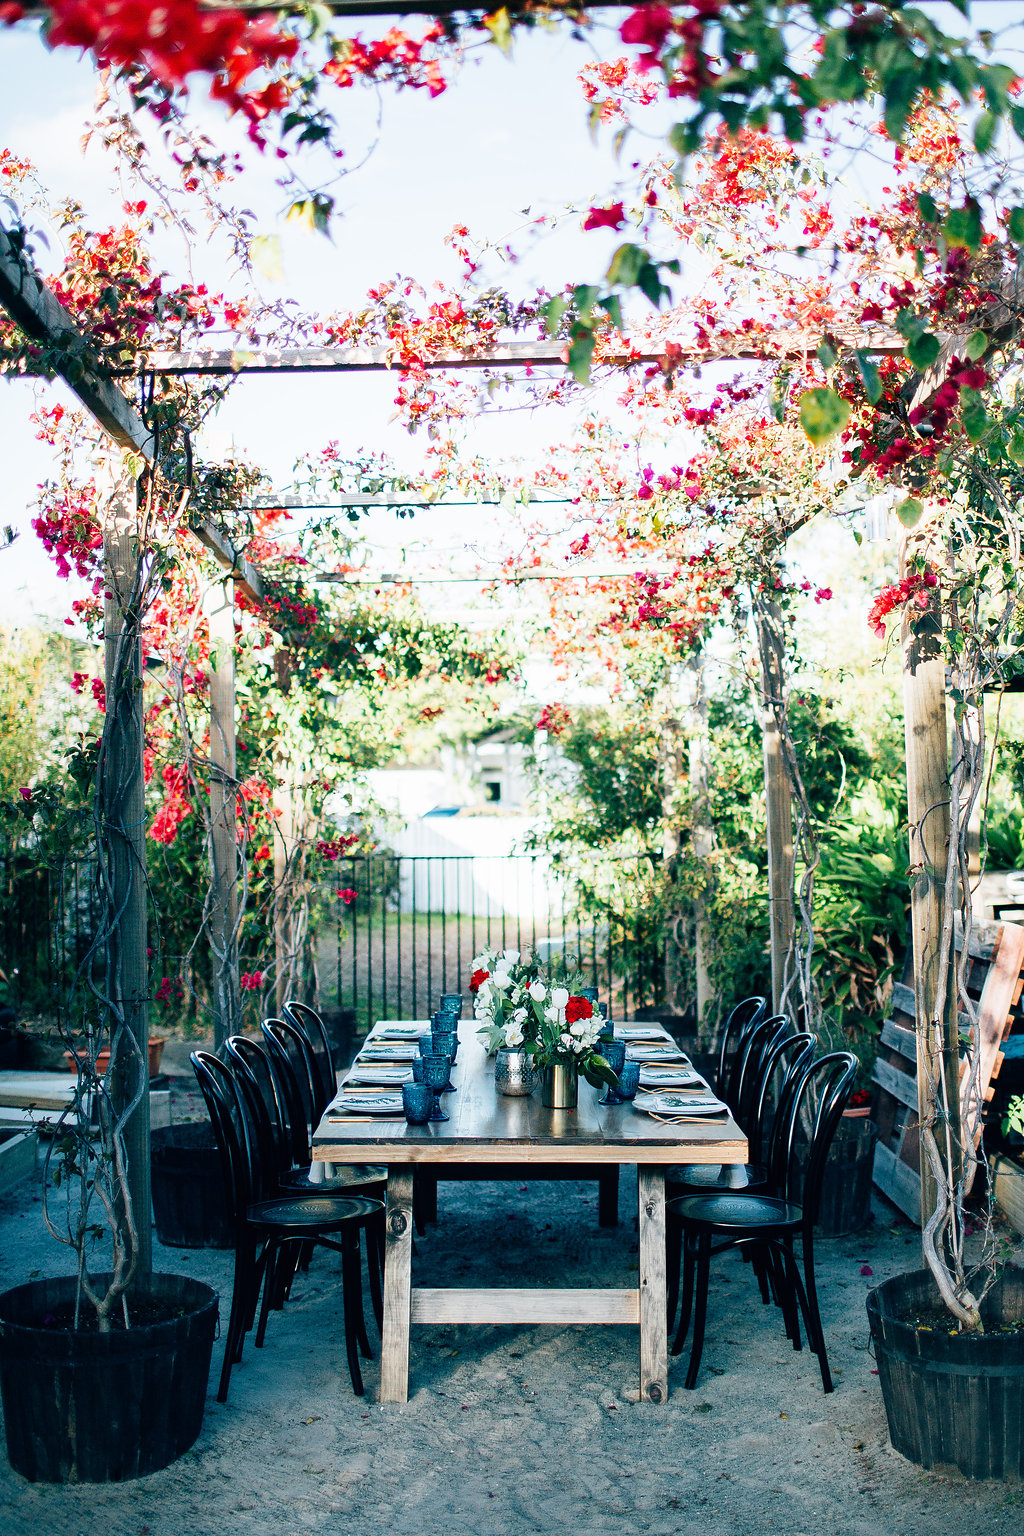 Hampton Event Hire - Wedding and Event Hire | Christmas Table Styling Inspiration at Osteria Casuarina | Black Bentwood Chairs and Feasting Tables | www.hamptoneventhire.com | Photo by Figtree Pictures